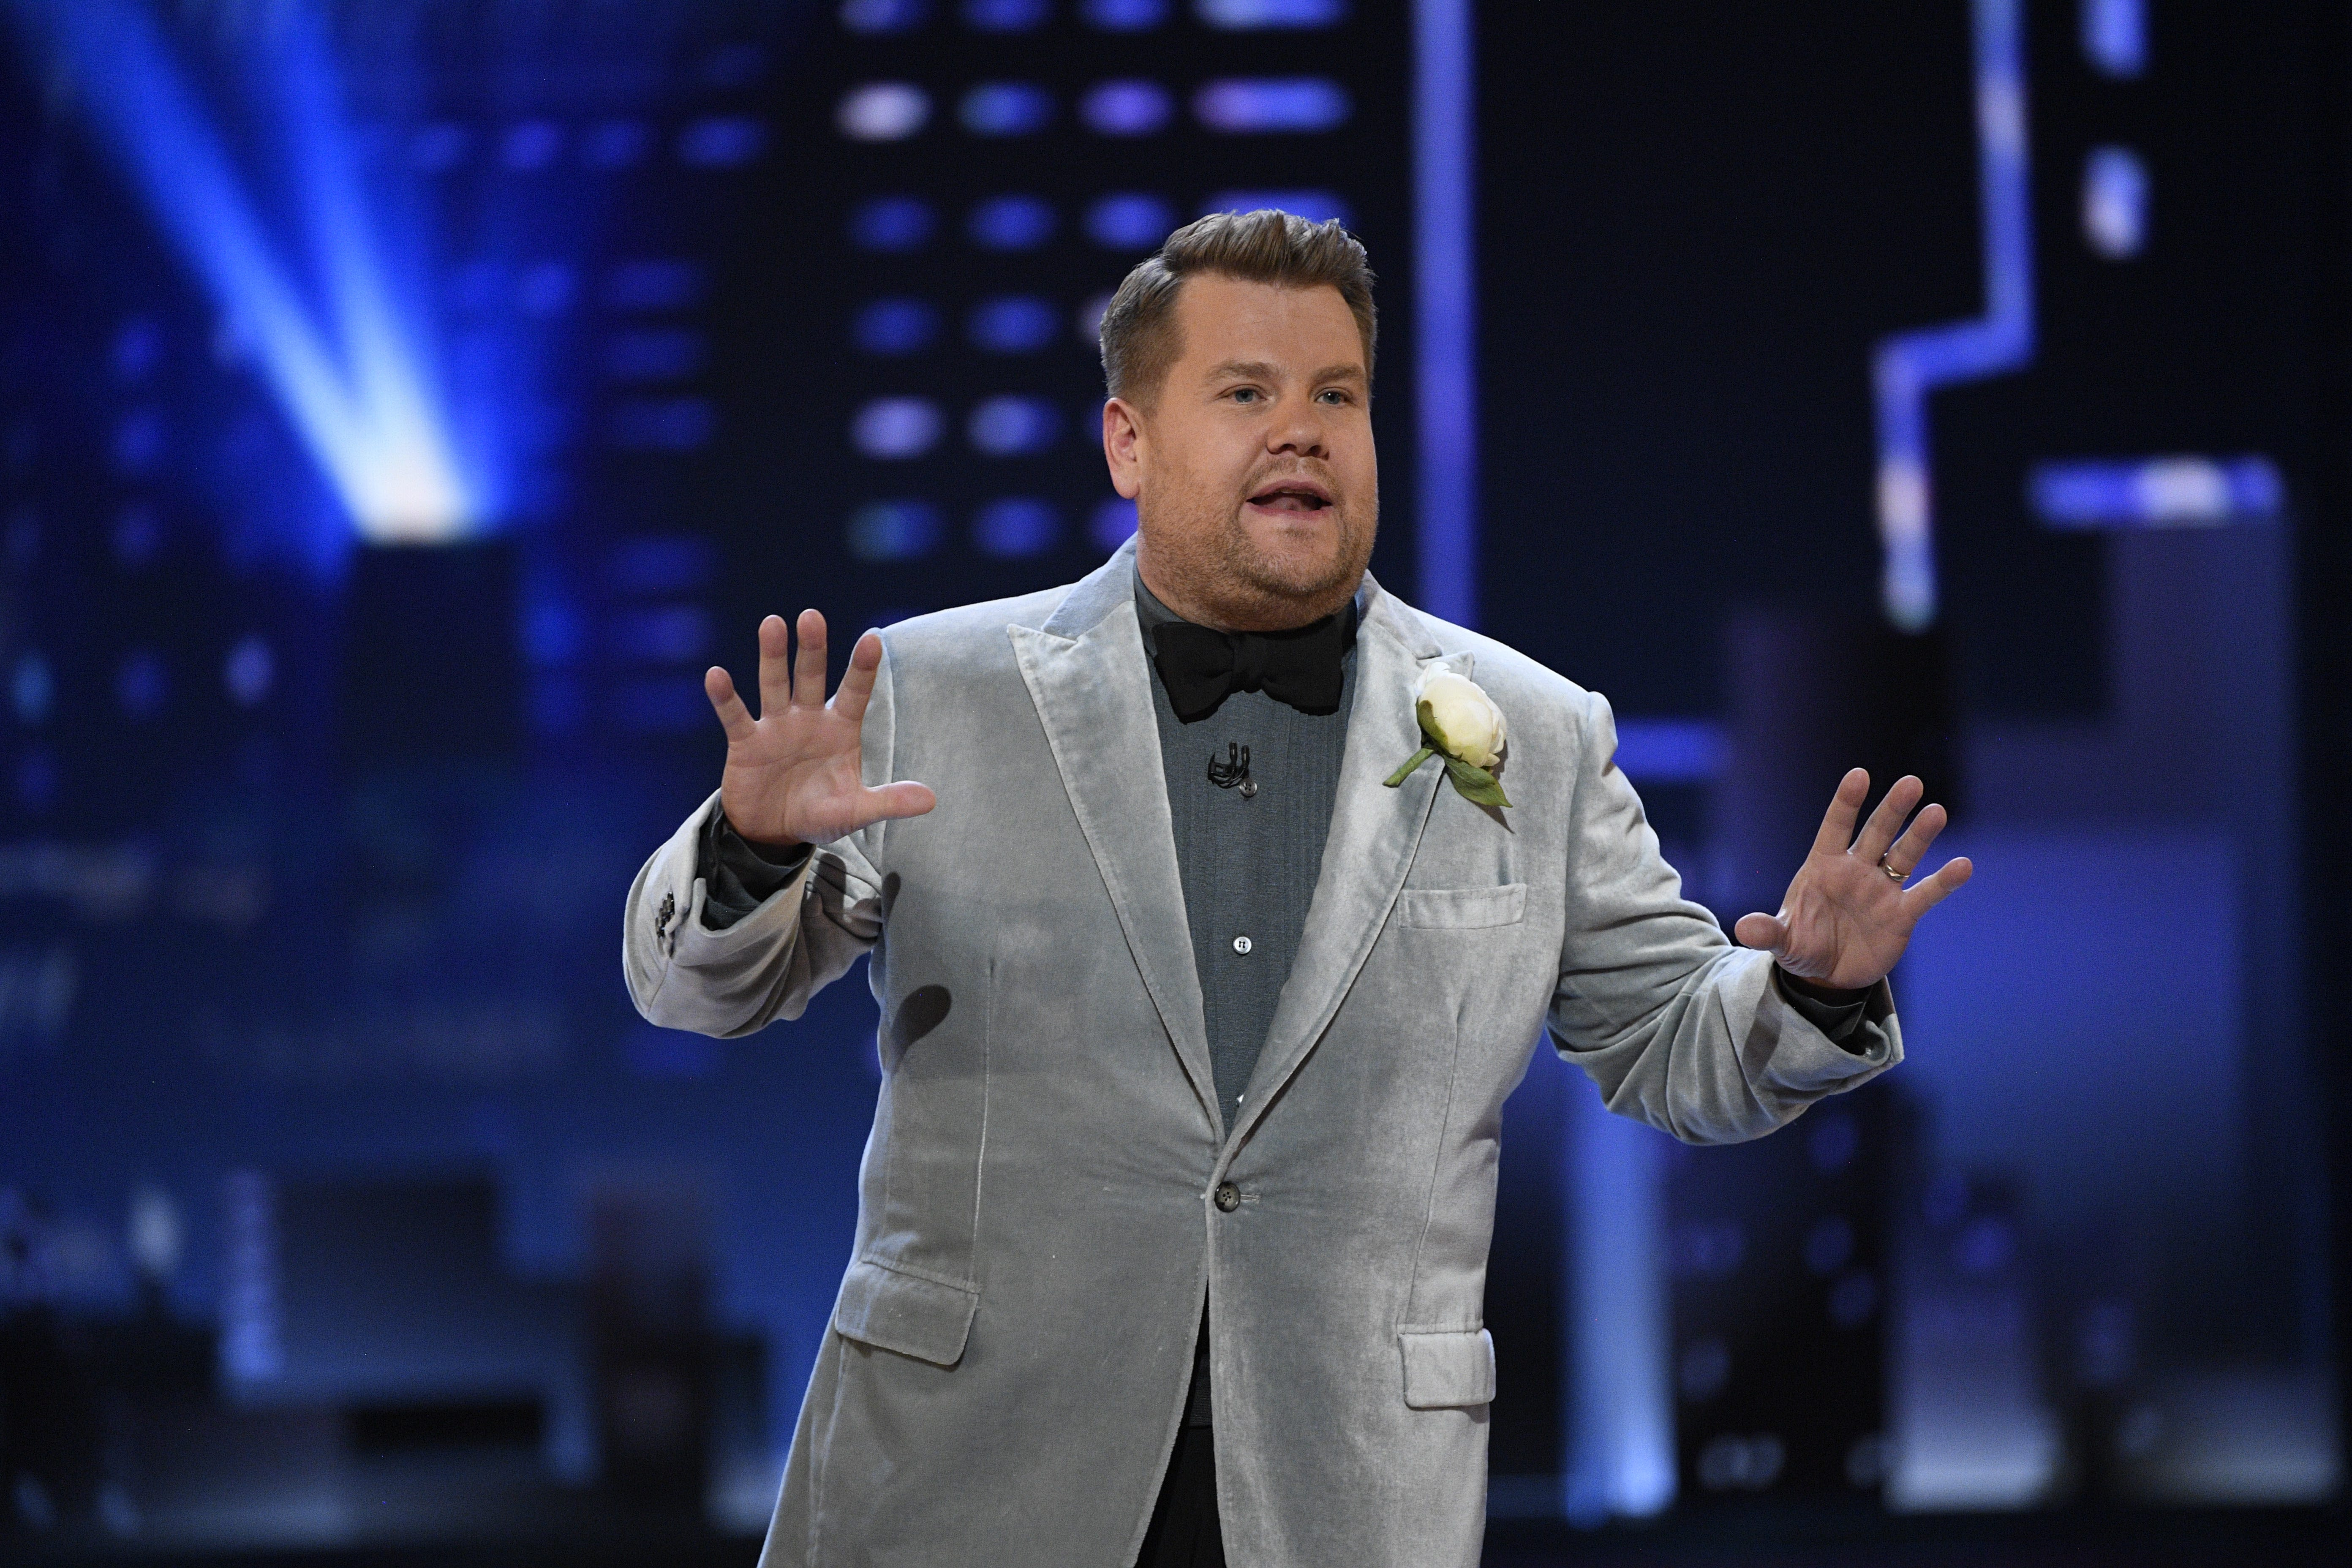 Corden: Nevada is  finally feeling the Bern  in a good way